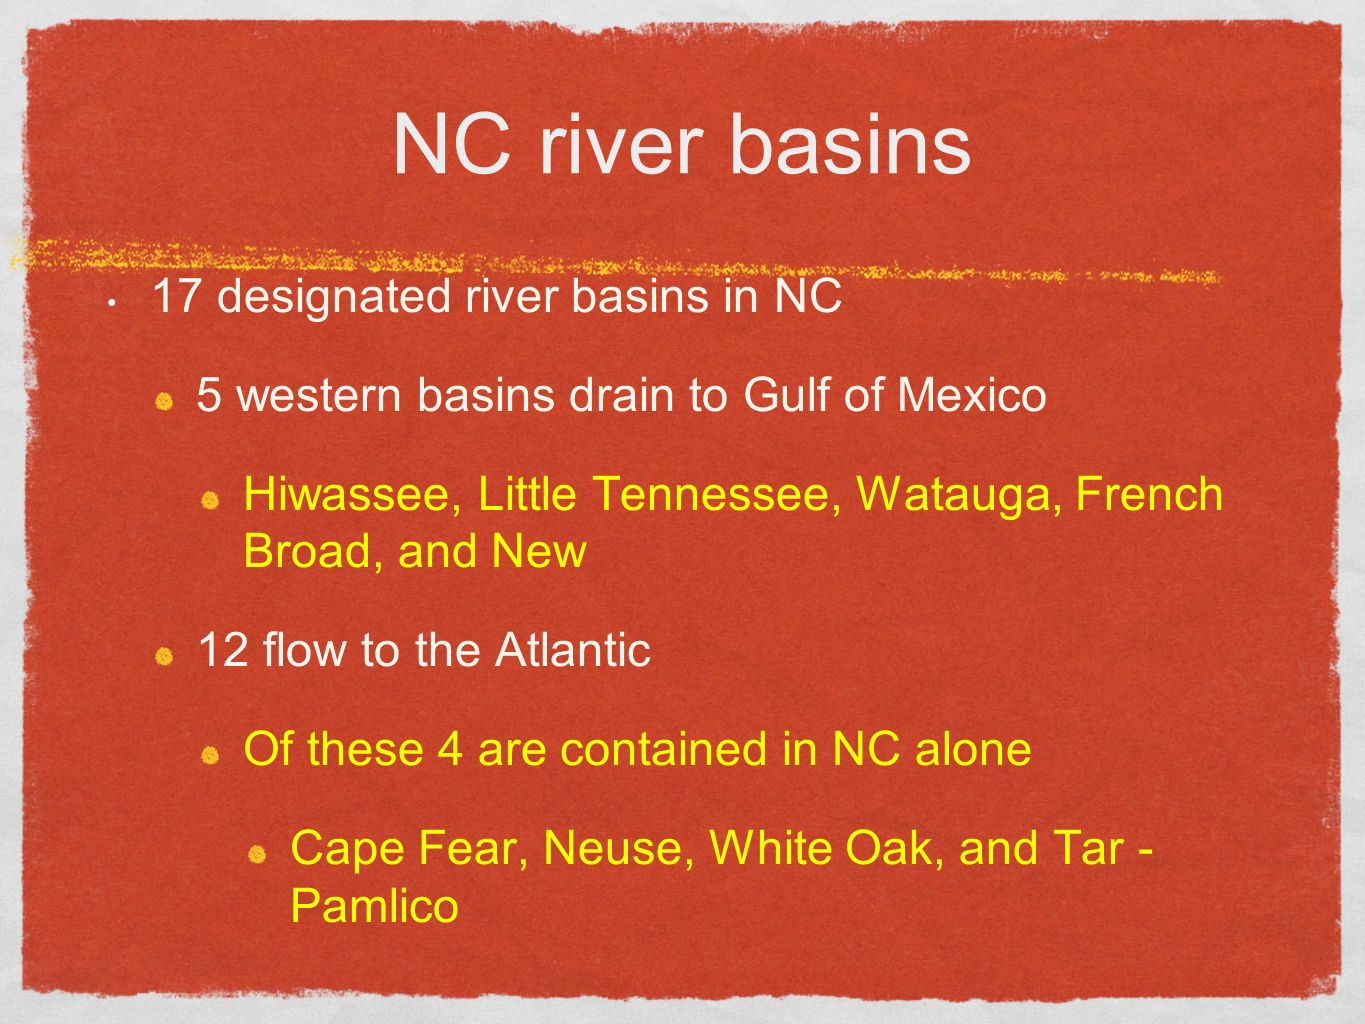 NC river basins 17 designated river basins in NC 5 western basins drain to Gulf of Mexico Hiwassee, Little Tennessee, Watauga, French Broad, and New 12 flow to the Atlantic Of these 4 are contained in NC alone Cape Fear, Neuse, White Oak, and Tar - Pamlico